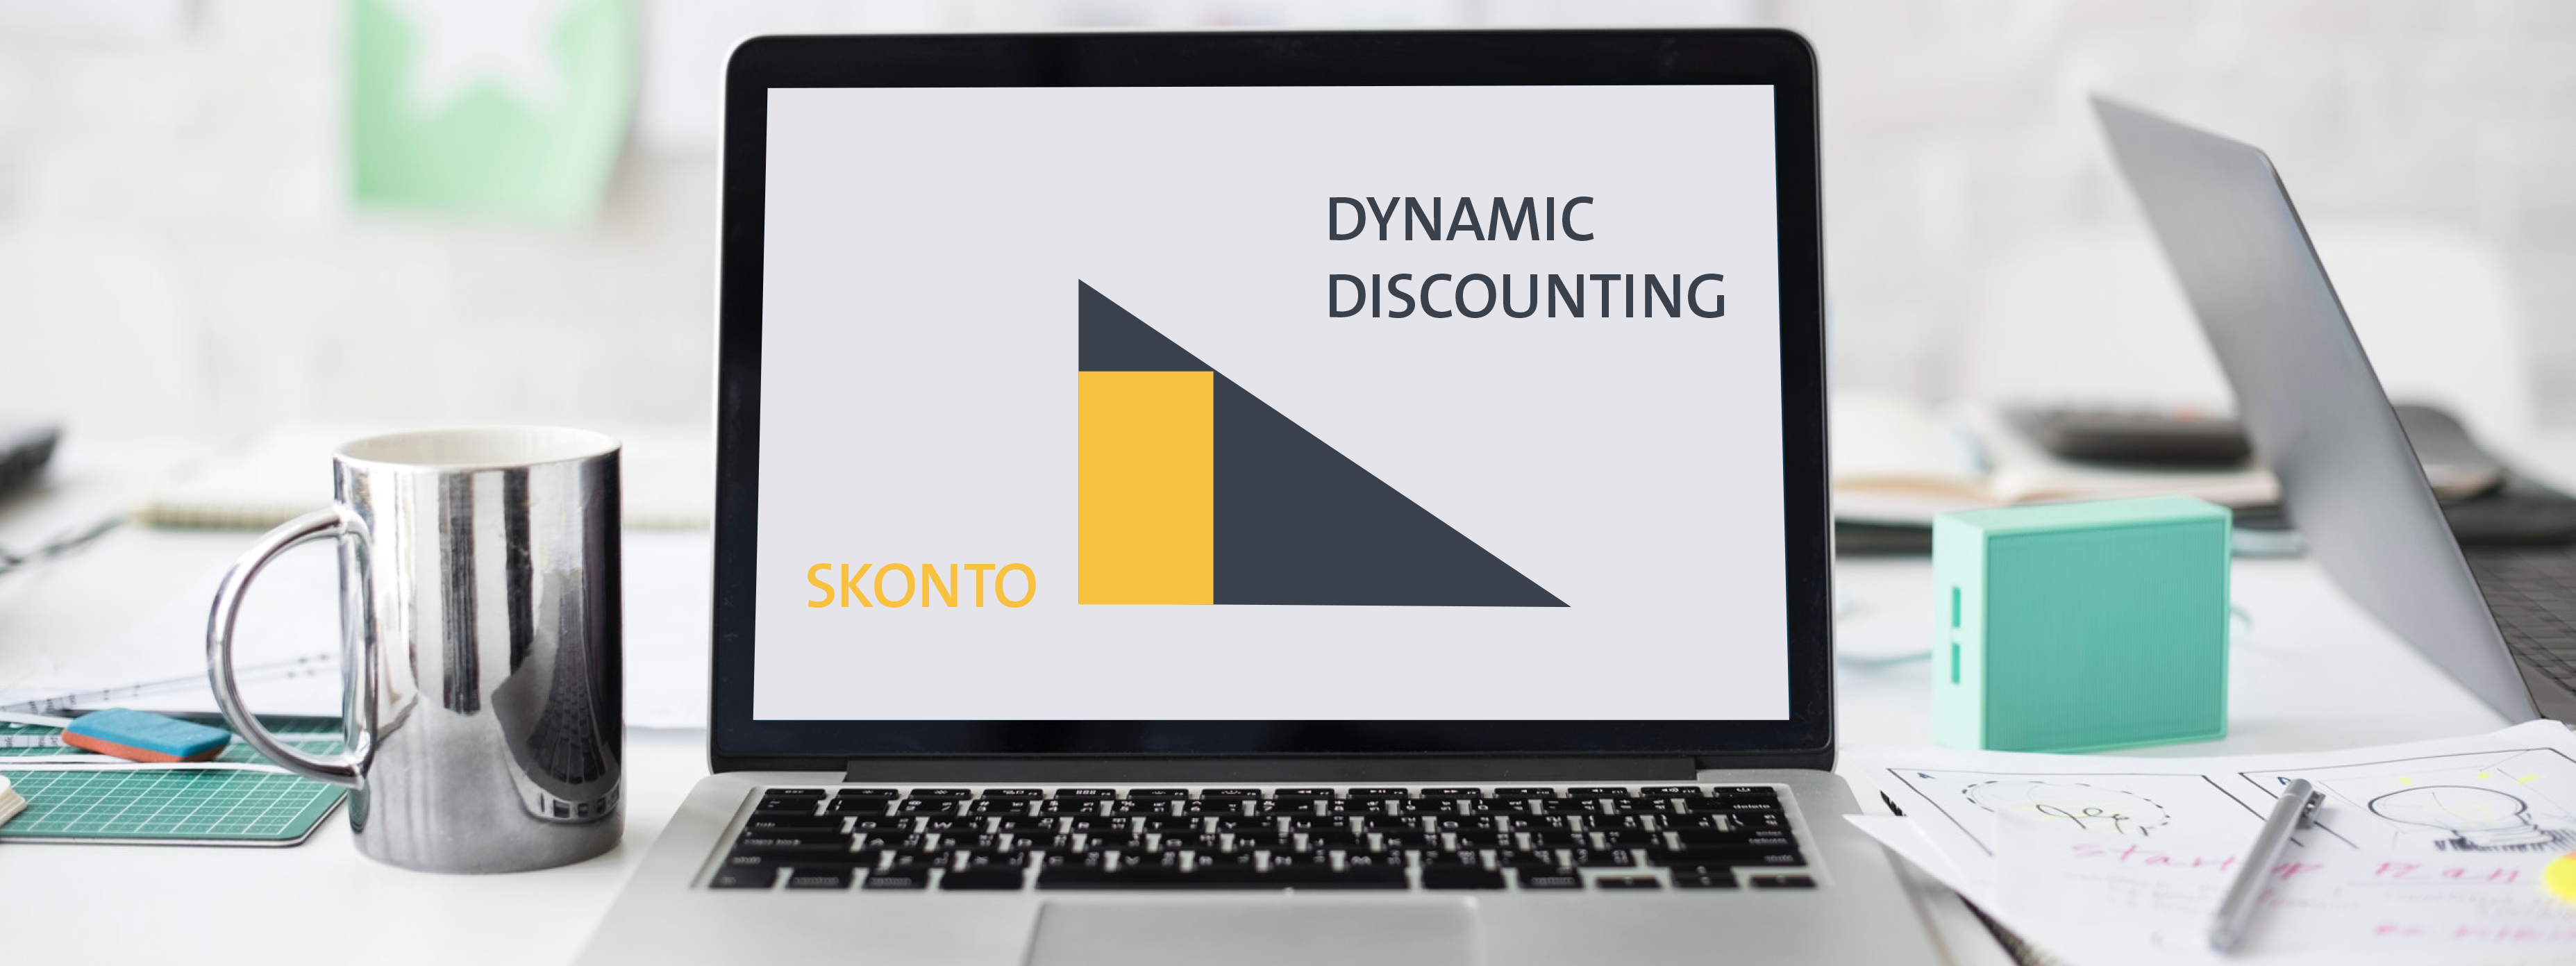 Skonto und Dynamic Discounting